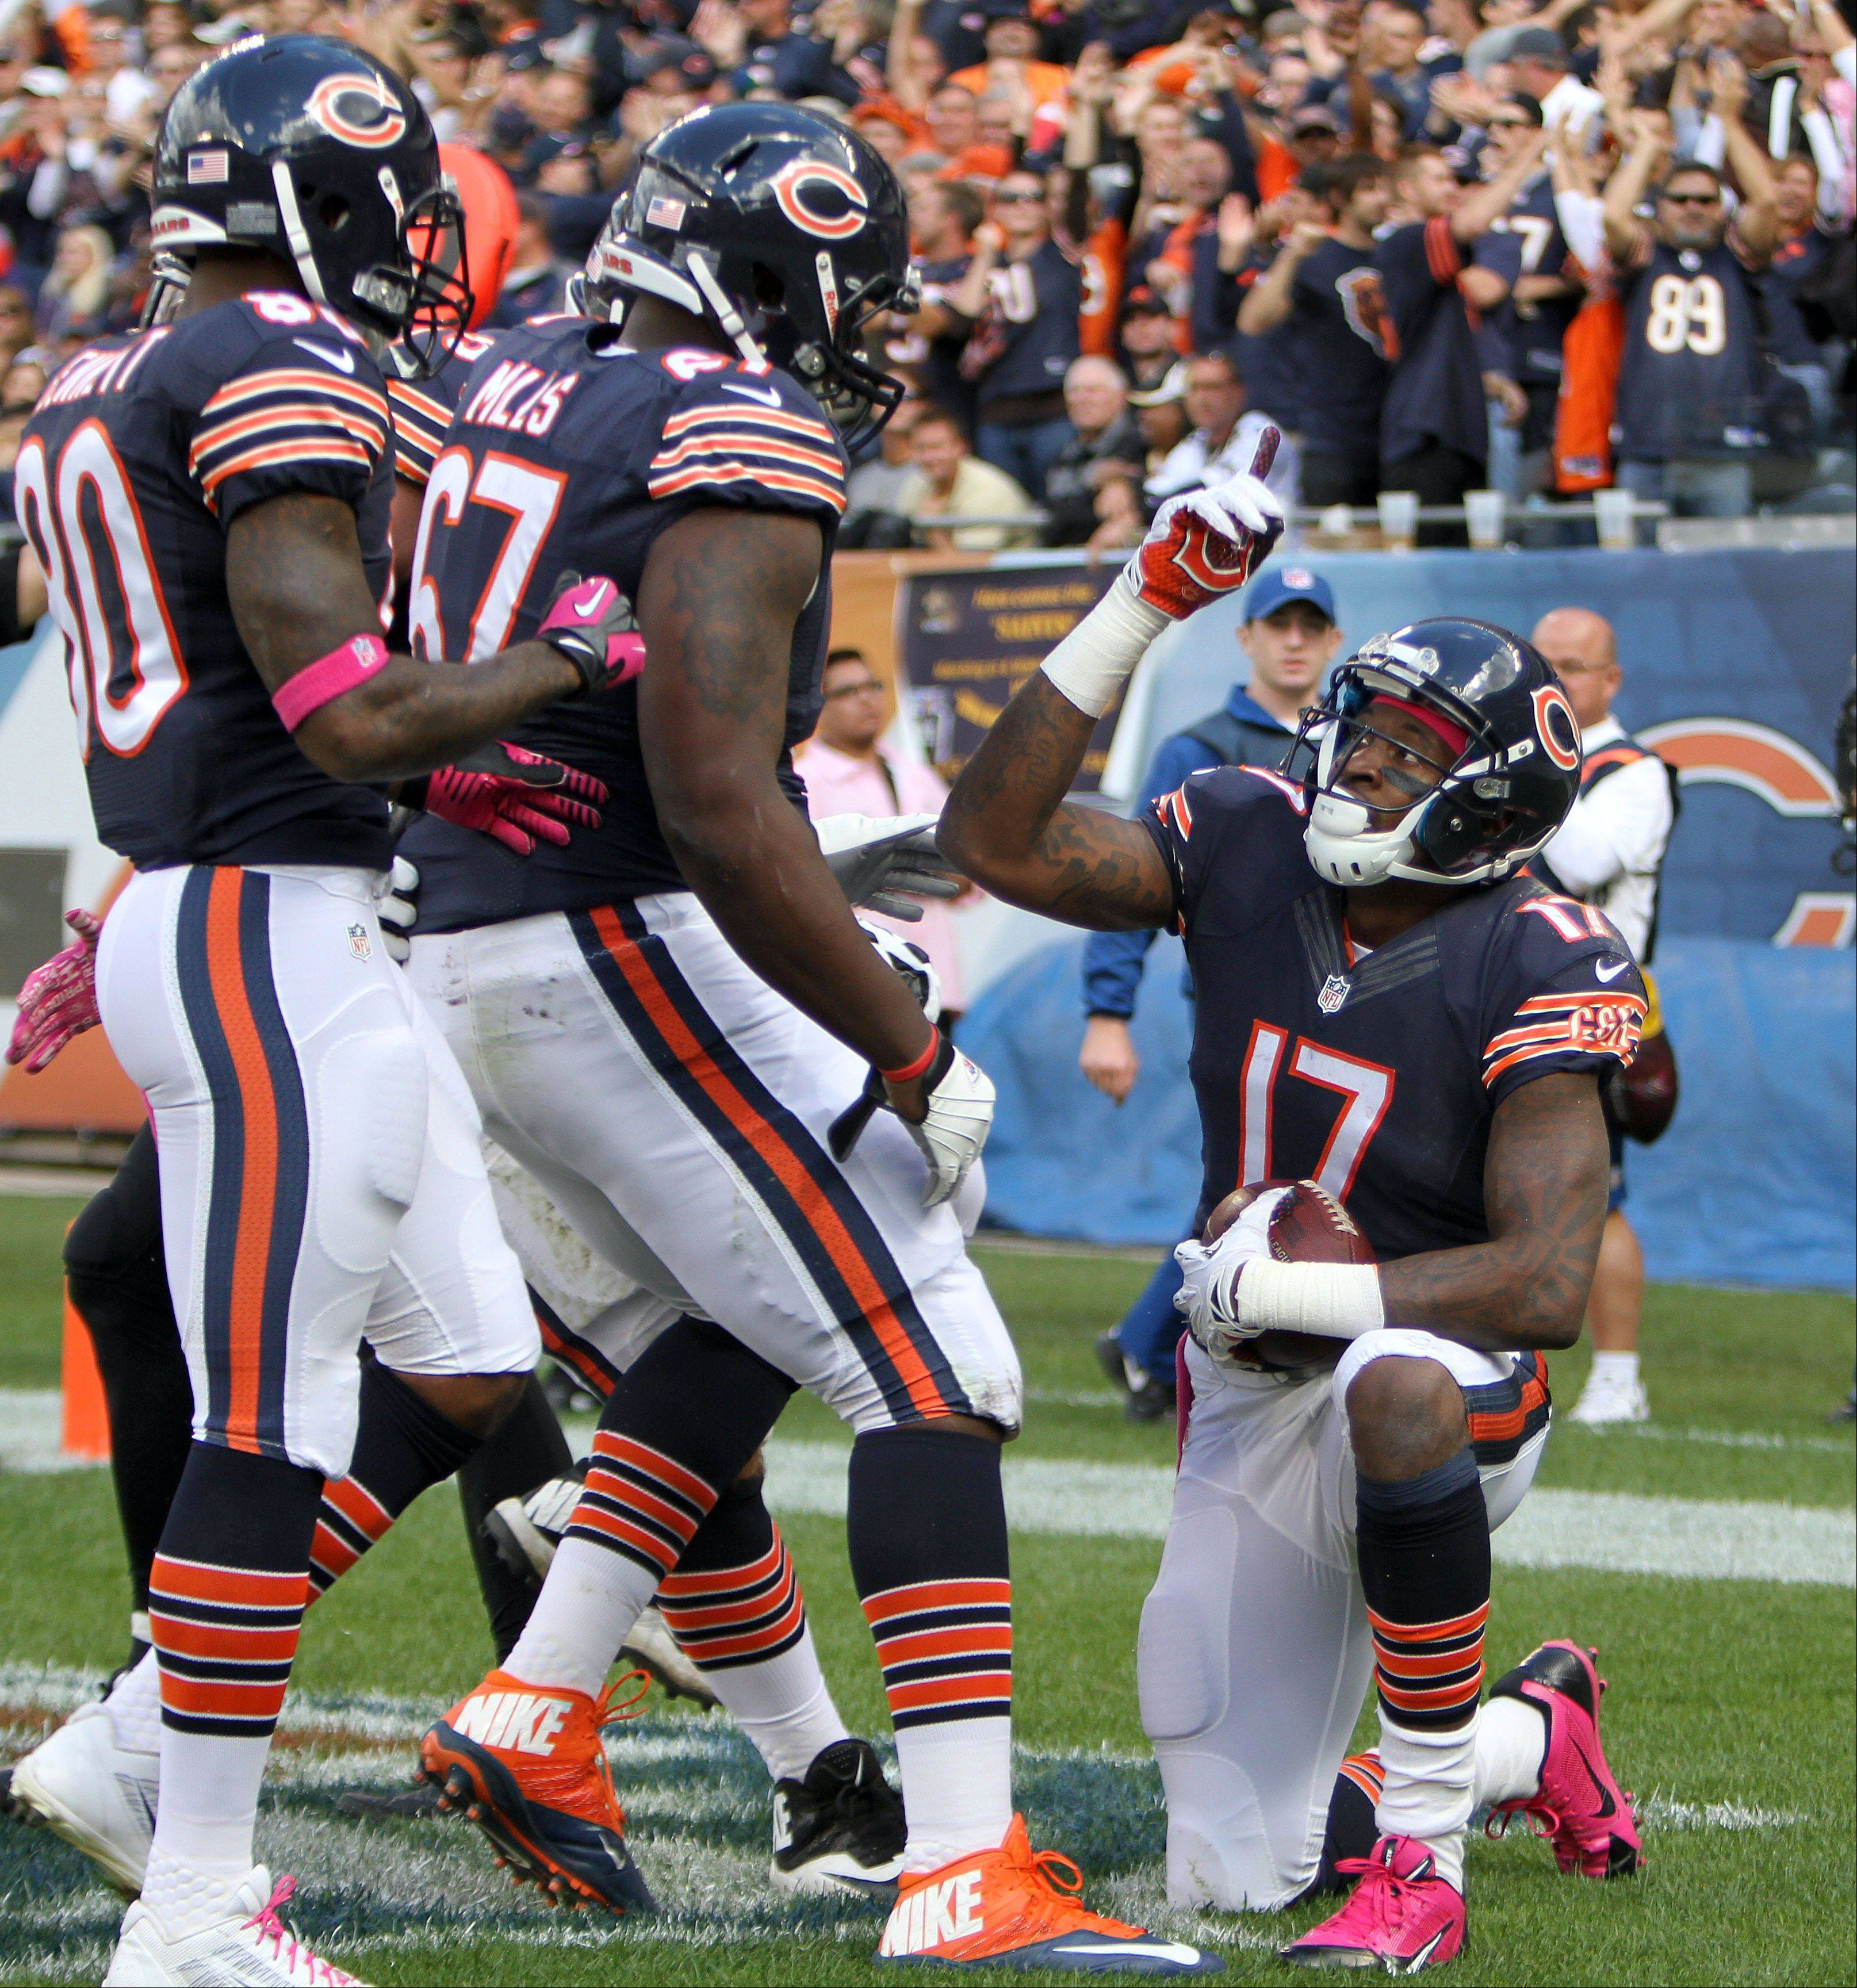 Chicago Bears wide receiver Alshon Jeffery points to the sky after his 3rd quarter touchdown.